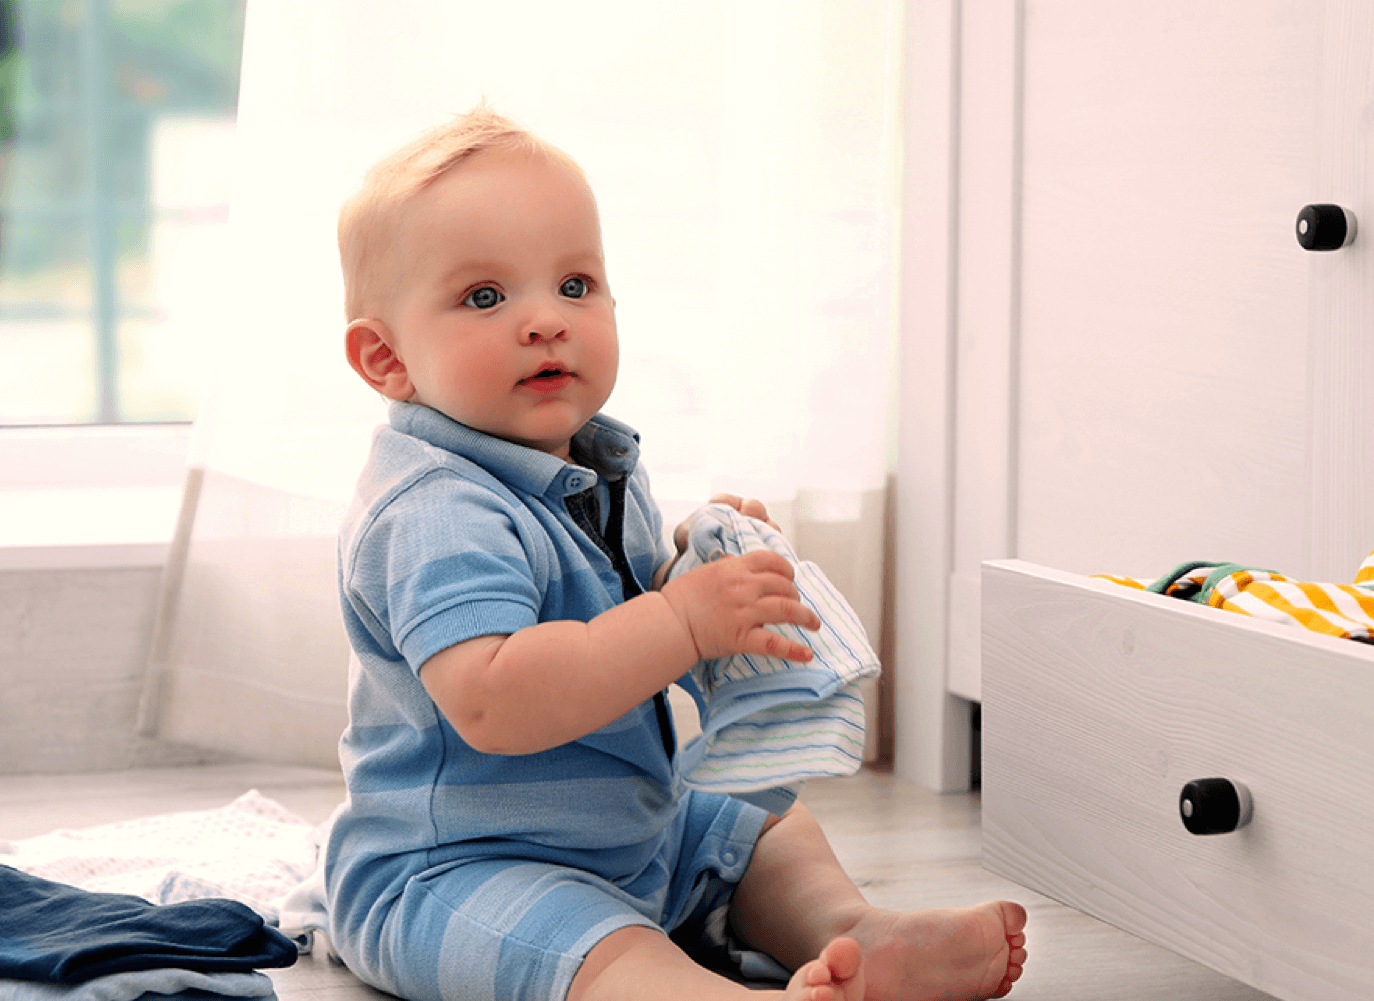 A baby sits on the floor and plays with some laundry. He is looking off camera